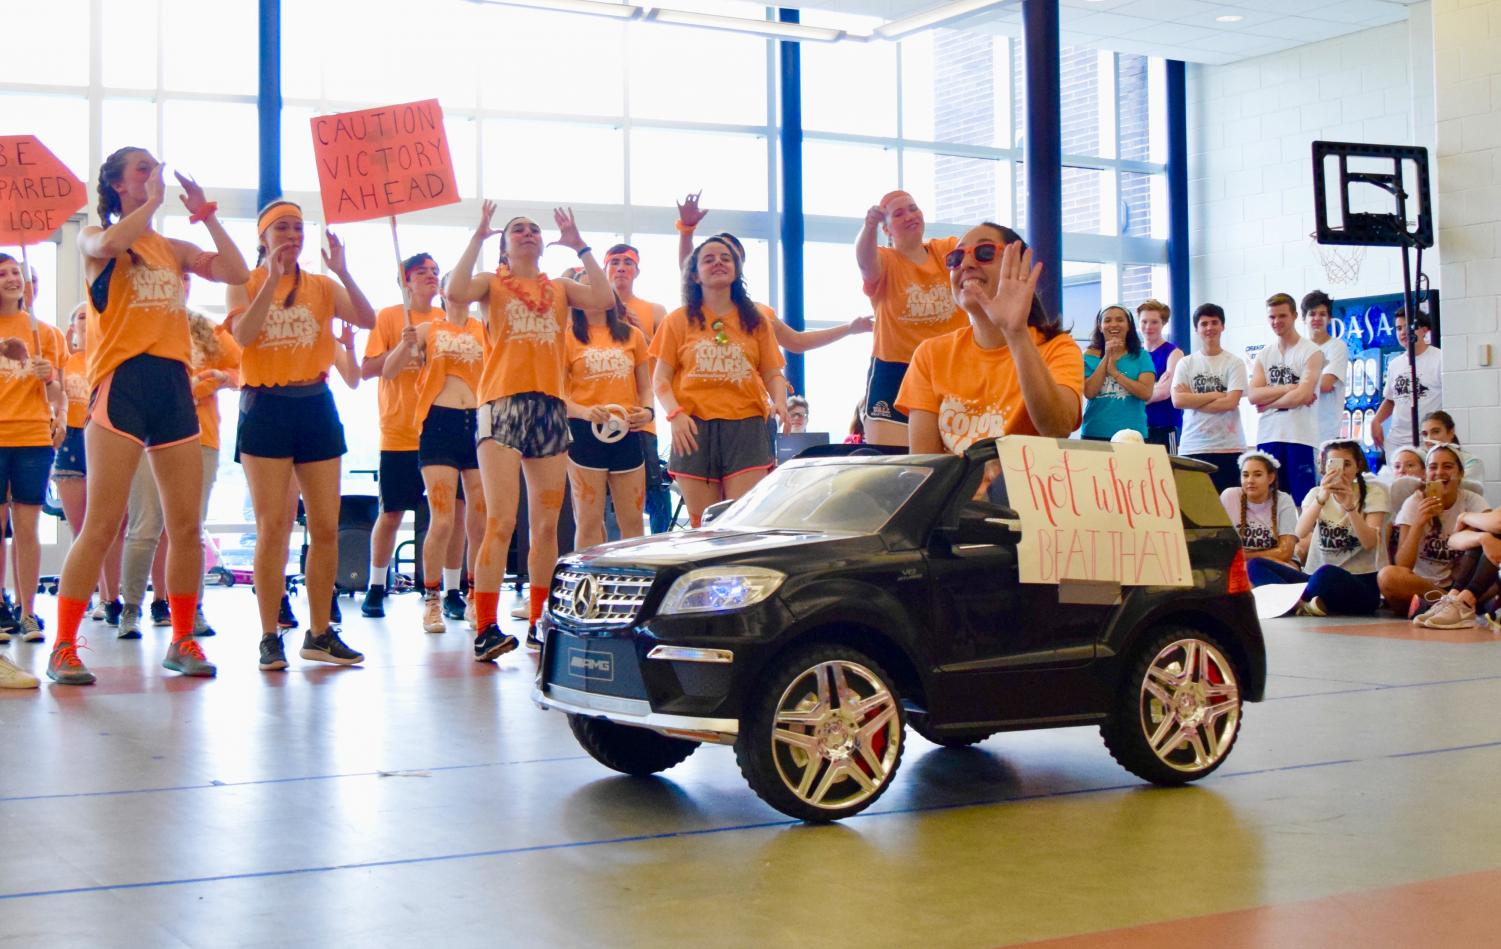 As+a+way+to+incorporate+their+team+name+of+%E2%80%9CHot+Wheels%2C%E2%80%9D+Orange+Team+adviser+and+chemistry+teacher+Erin+Wheeler+rides+a+miniature+car+at+the+end+of+the+team+chant.+